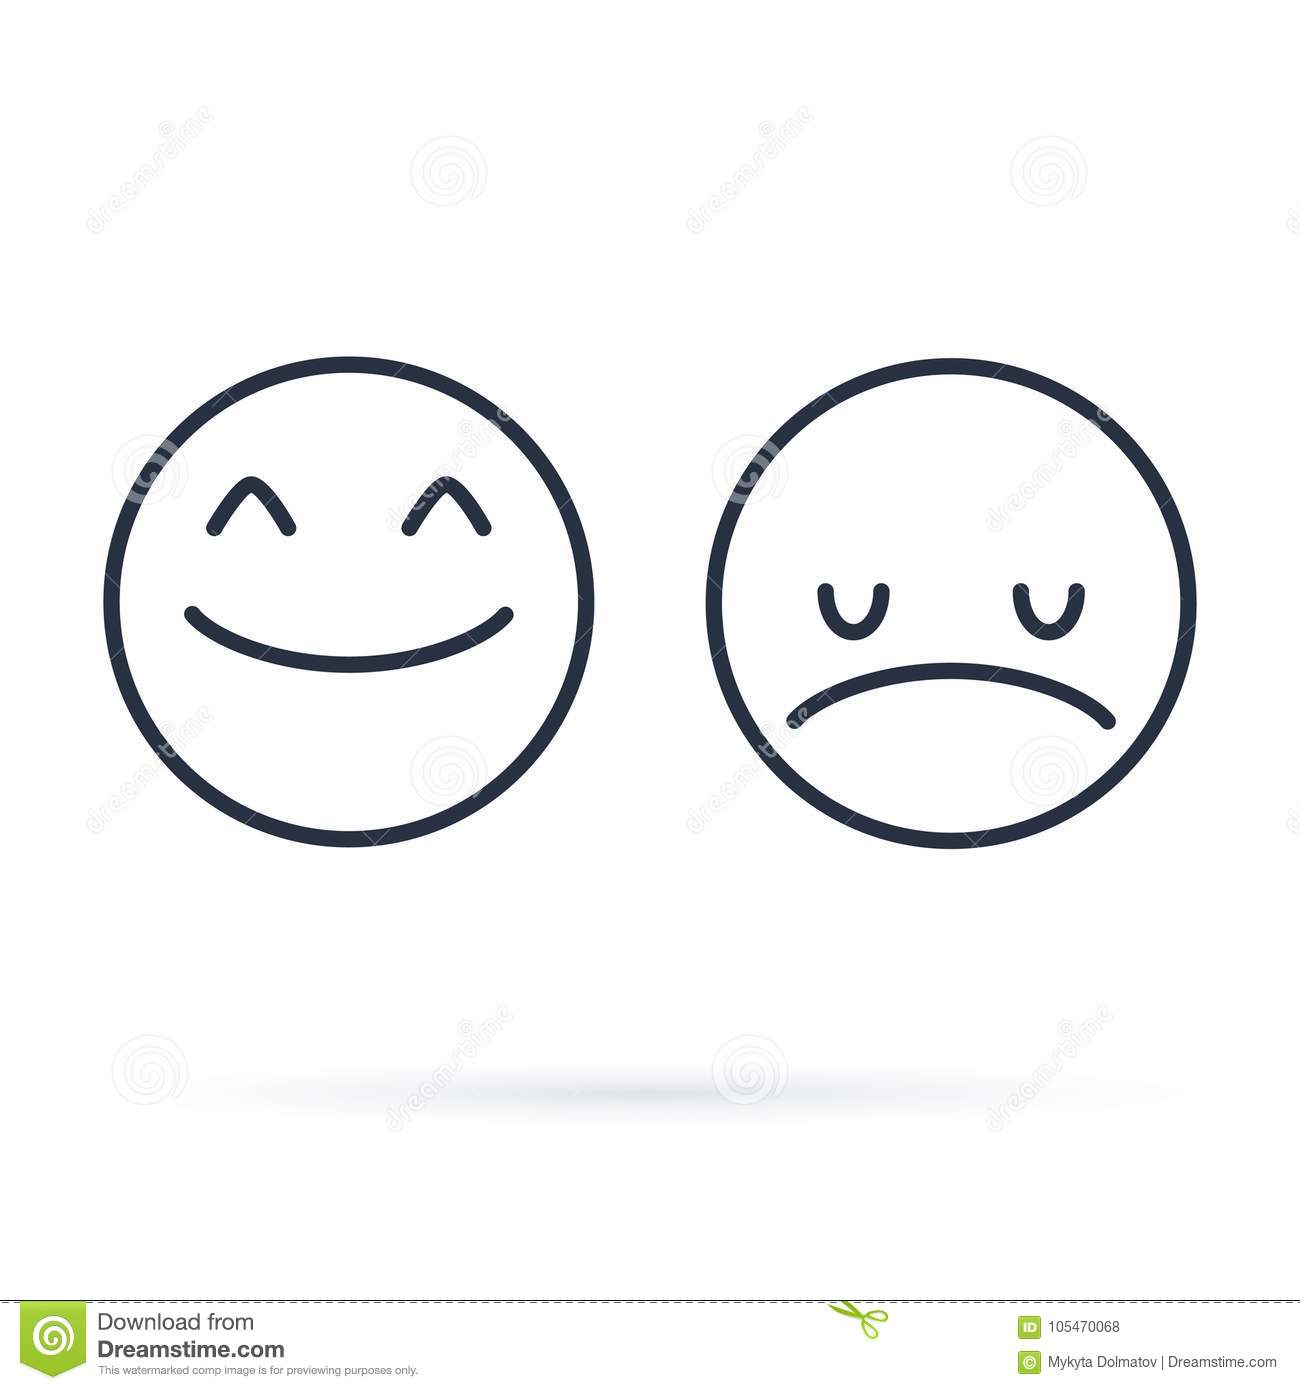 Smiling Face With Smiling Eyes Emoticon Line Icon Outline